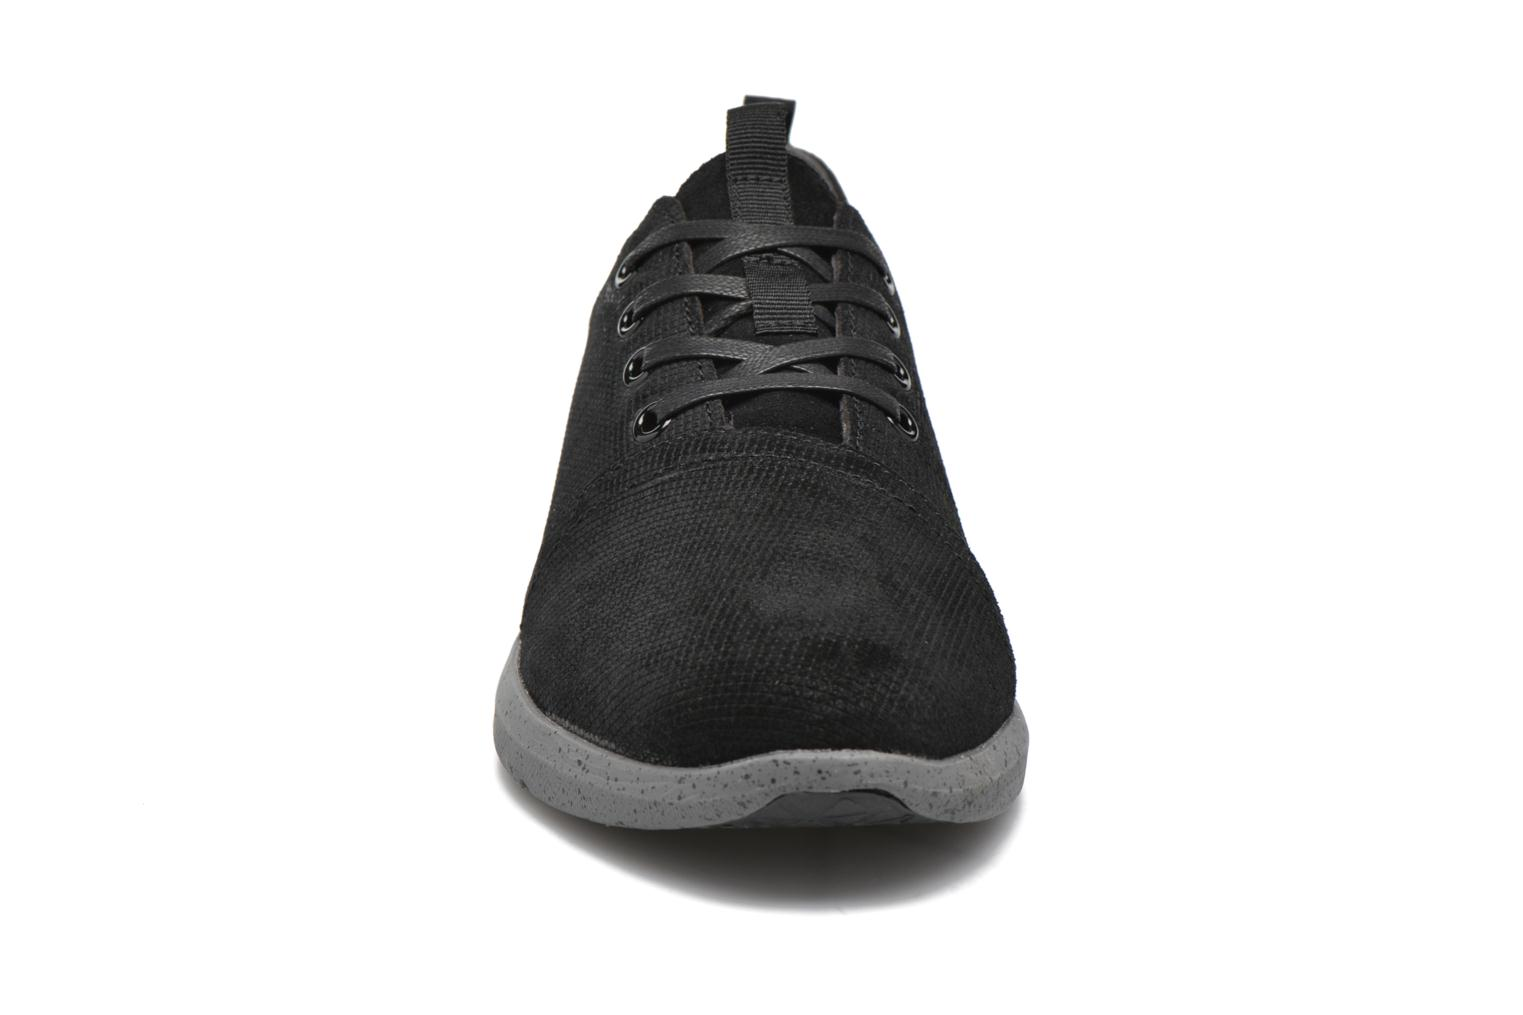 Del Rey H Black Embossed Waterproof Suede